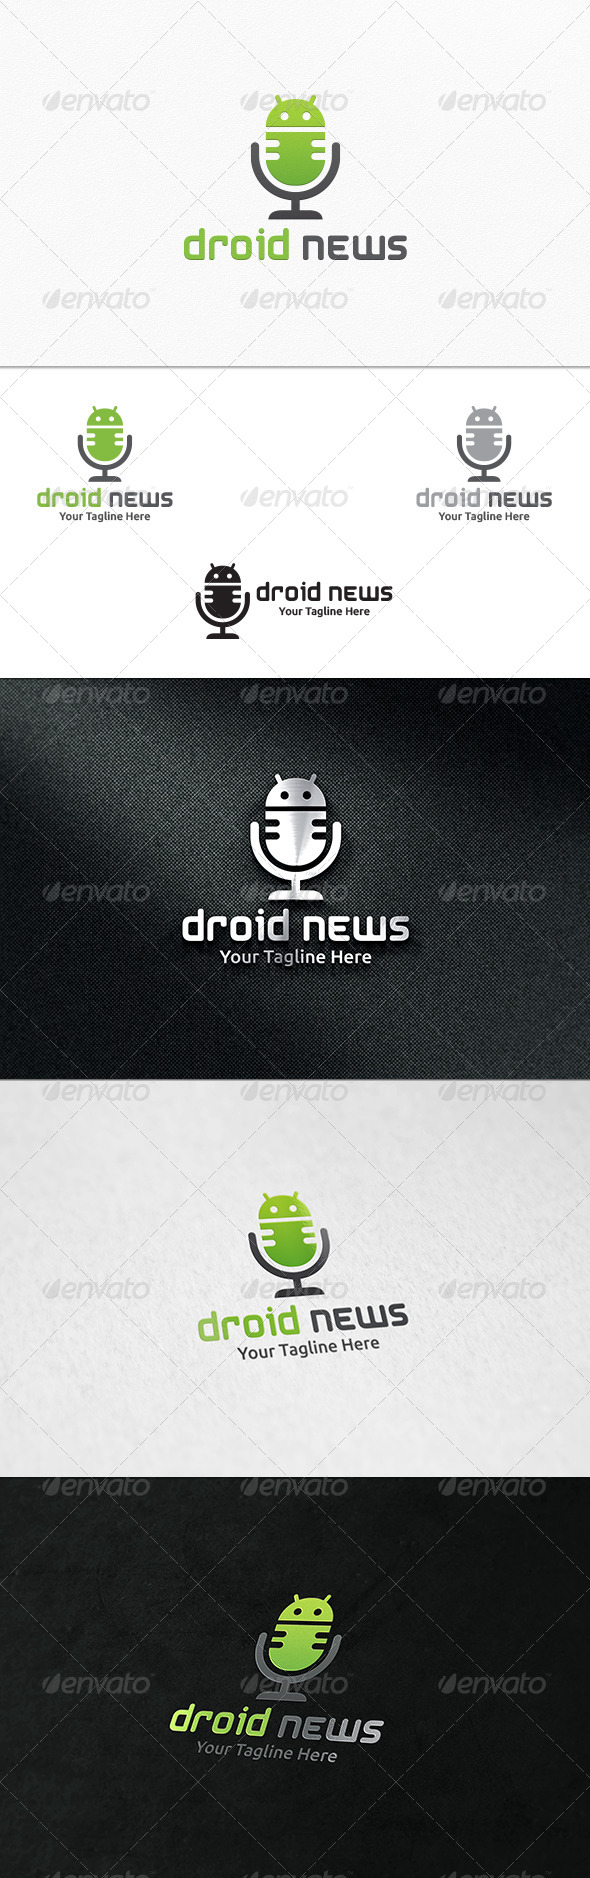 GraphicRiver Droid News Logo Template 7376928